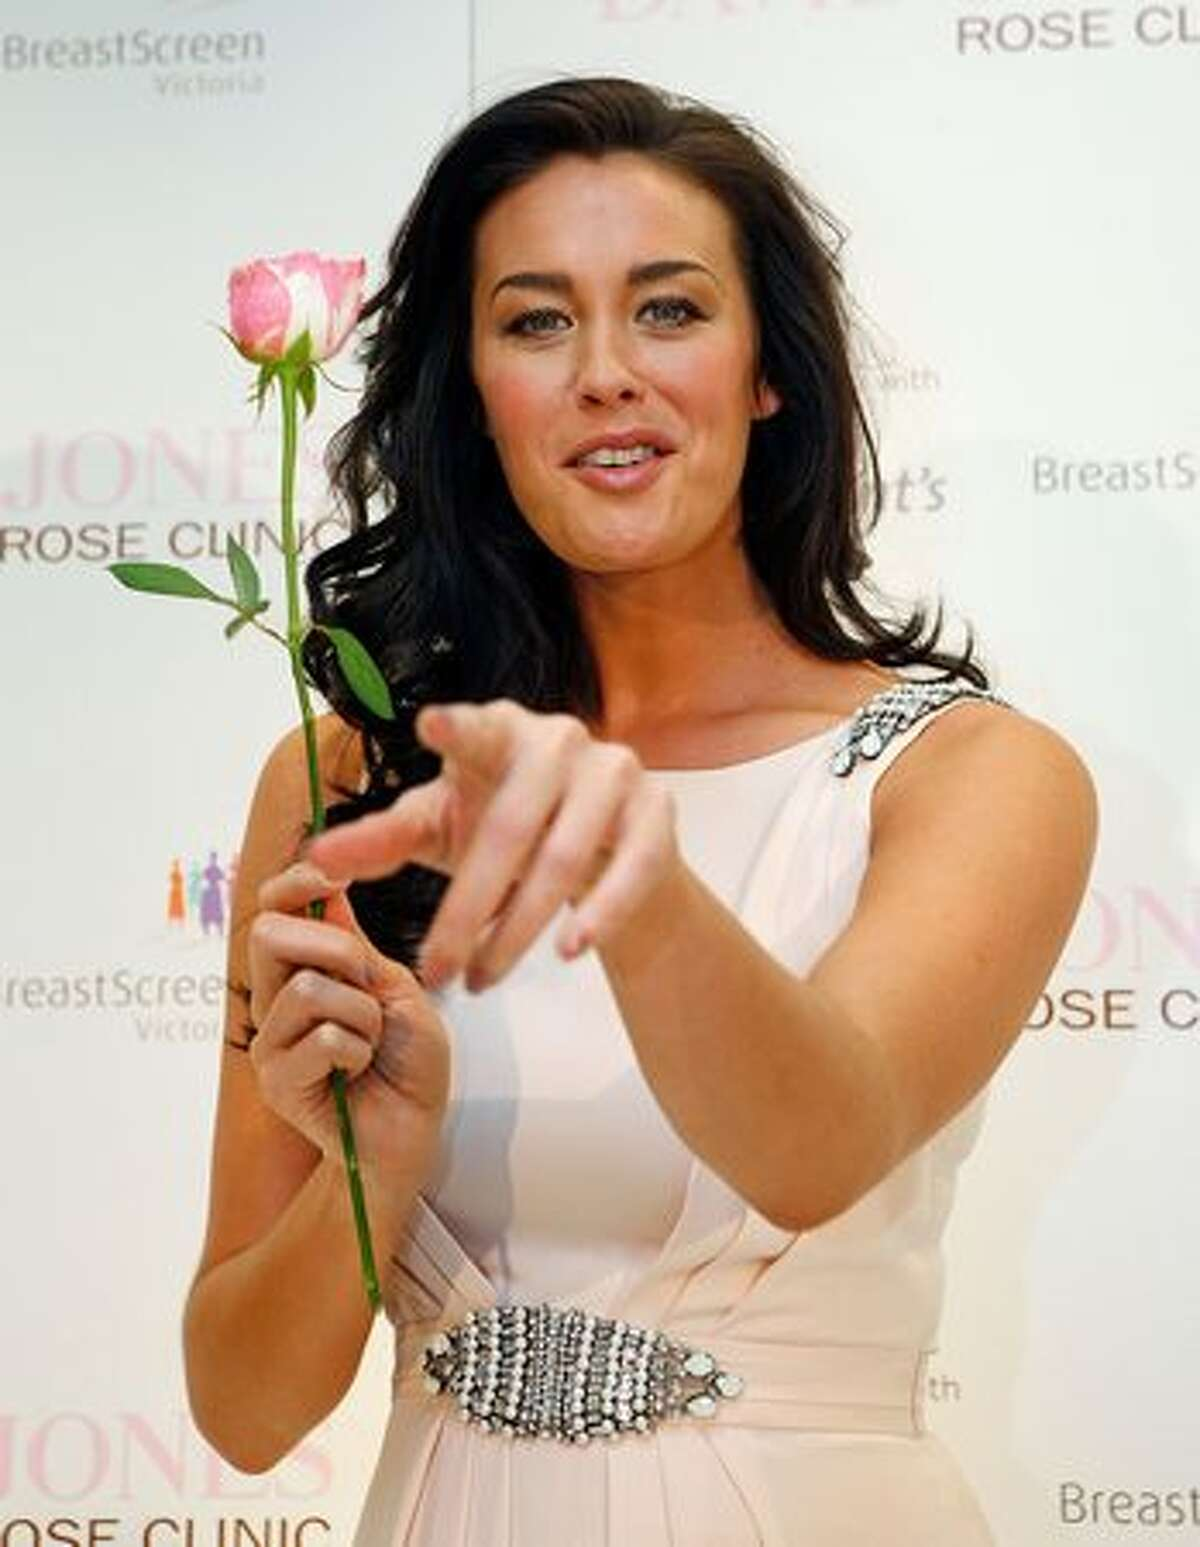 Model Megan Gale gestures while holding a rose during the announcement of a new women's health initiative at David Jones Bourke Street Mall on June 8, 2010 in Melbourne, Australia.